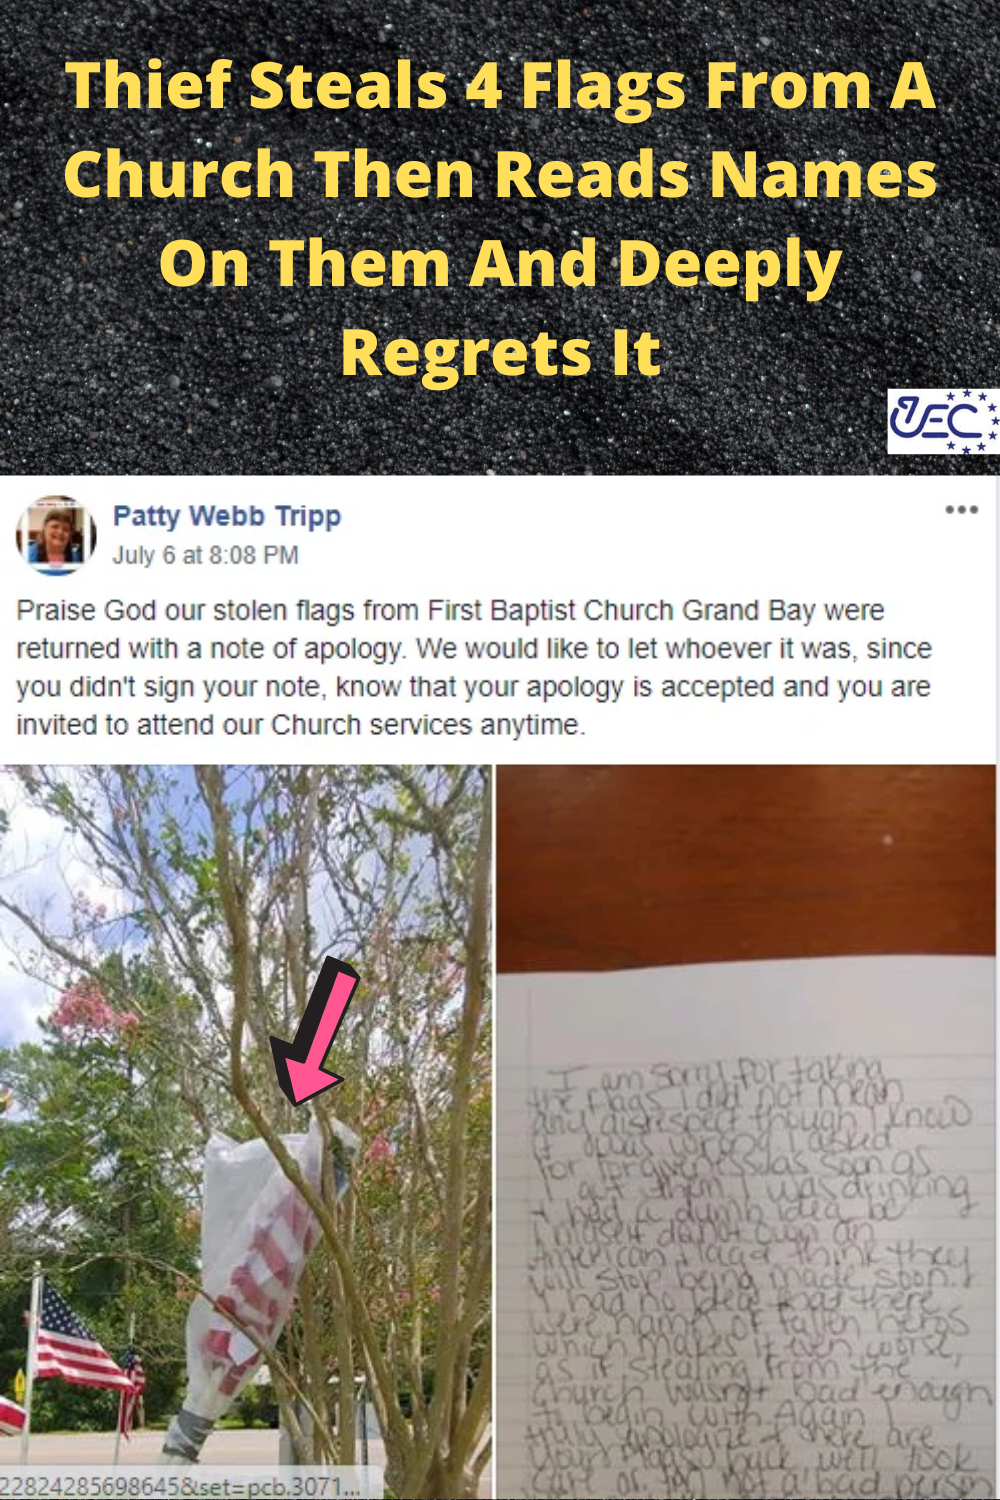 Thief Steals 4 Flags From A Church Then Reads Names On Them And Deeply Regrets It In 2020 Deeply Regret Fun Facts Grand Bay